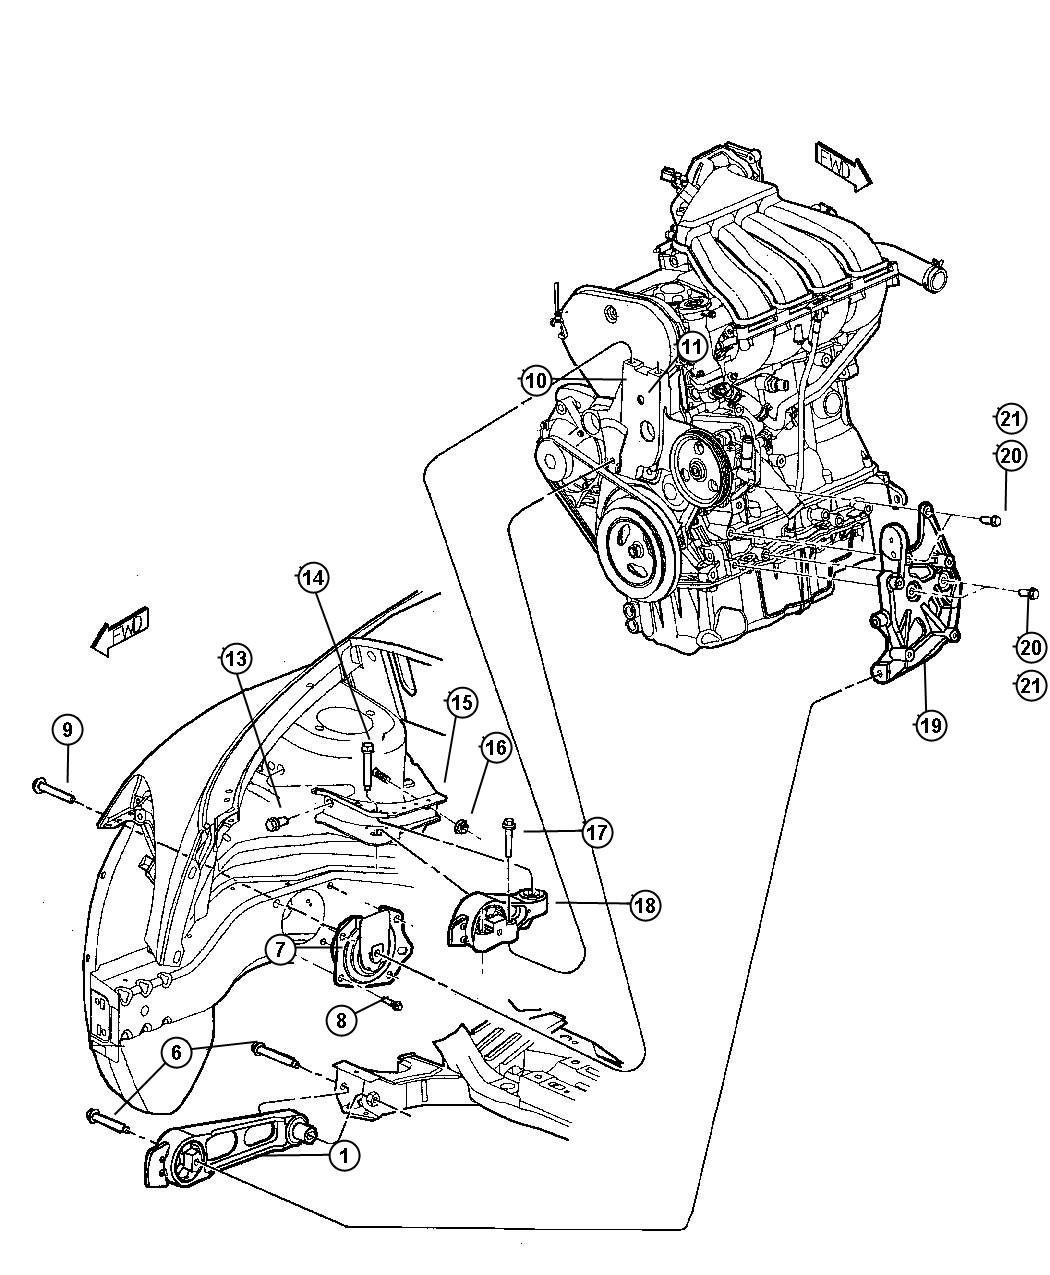 Chrysler Town & Country Support. Engine mount. Body side